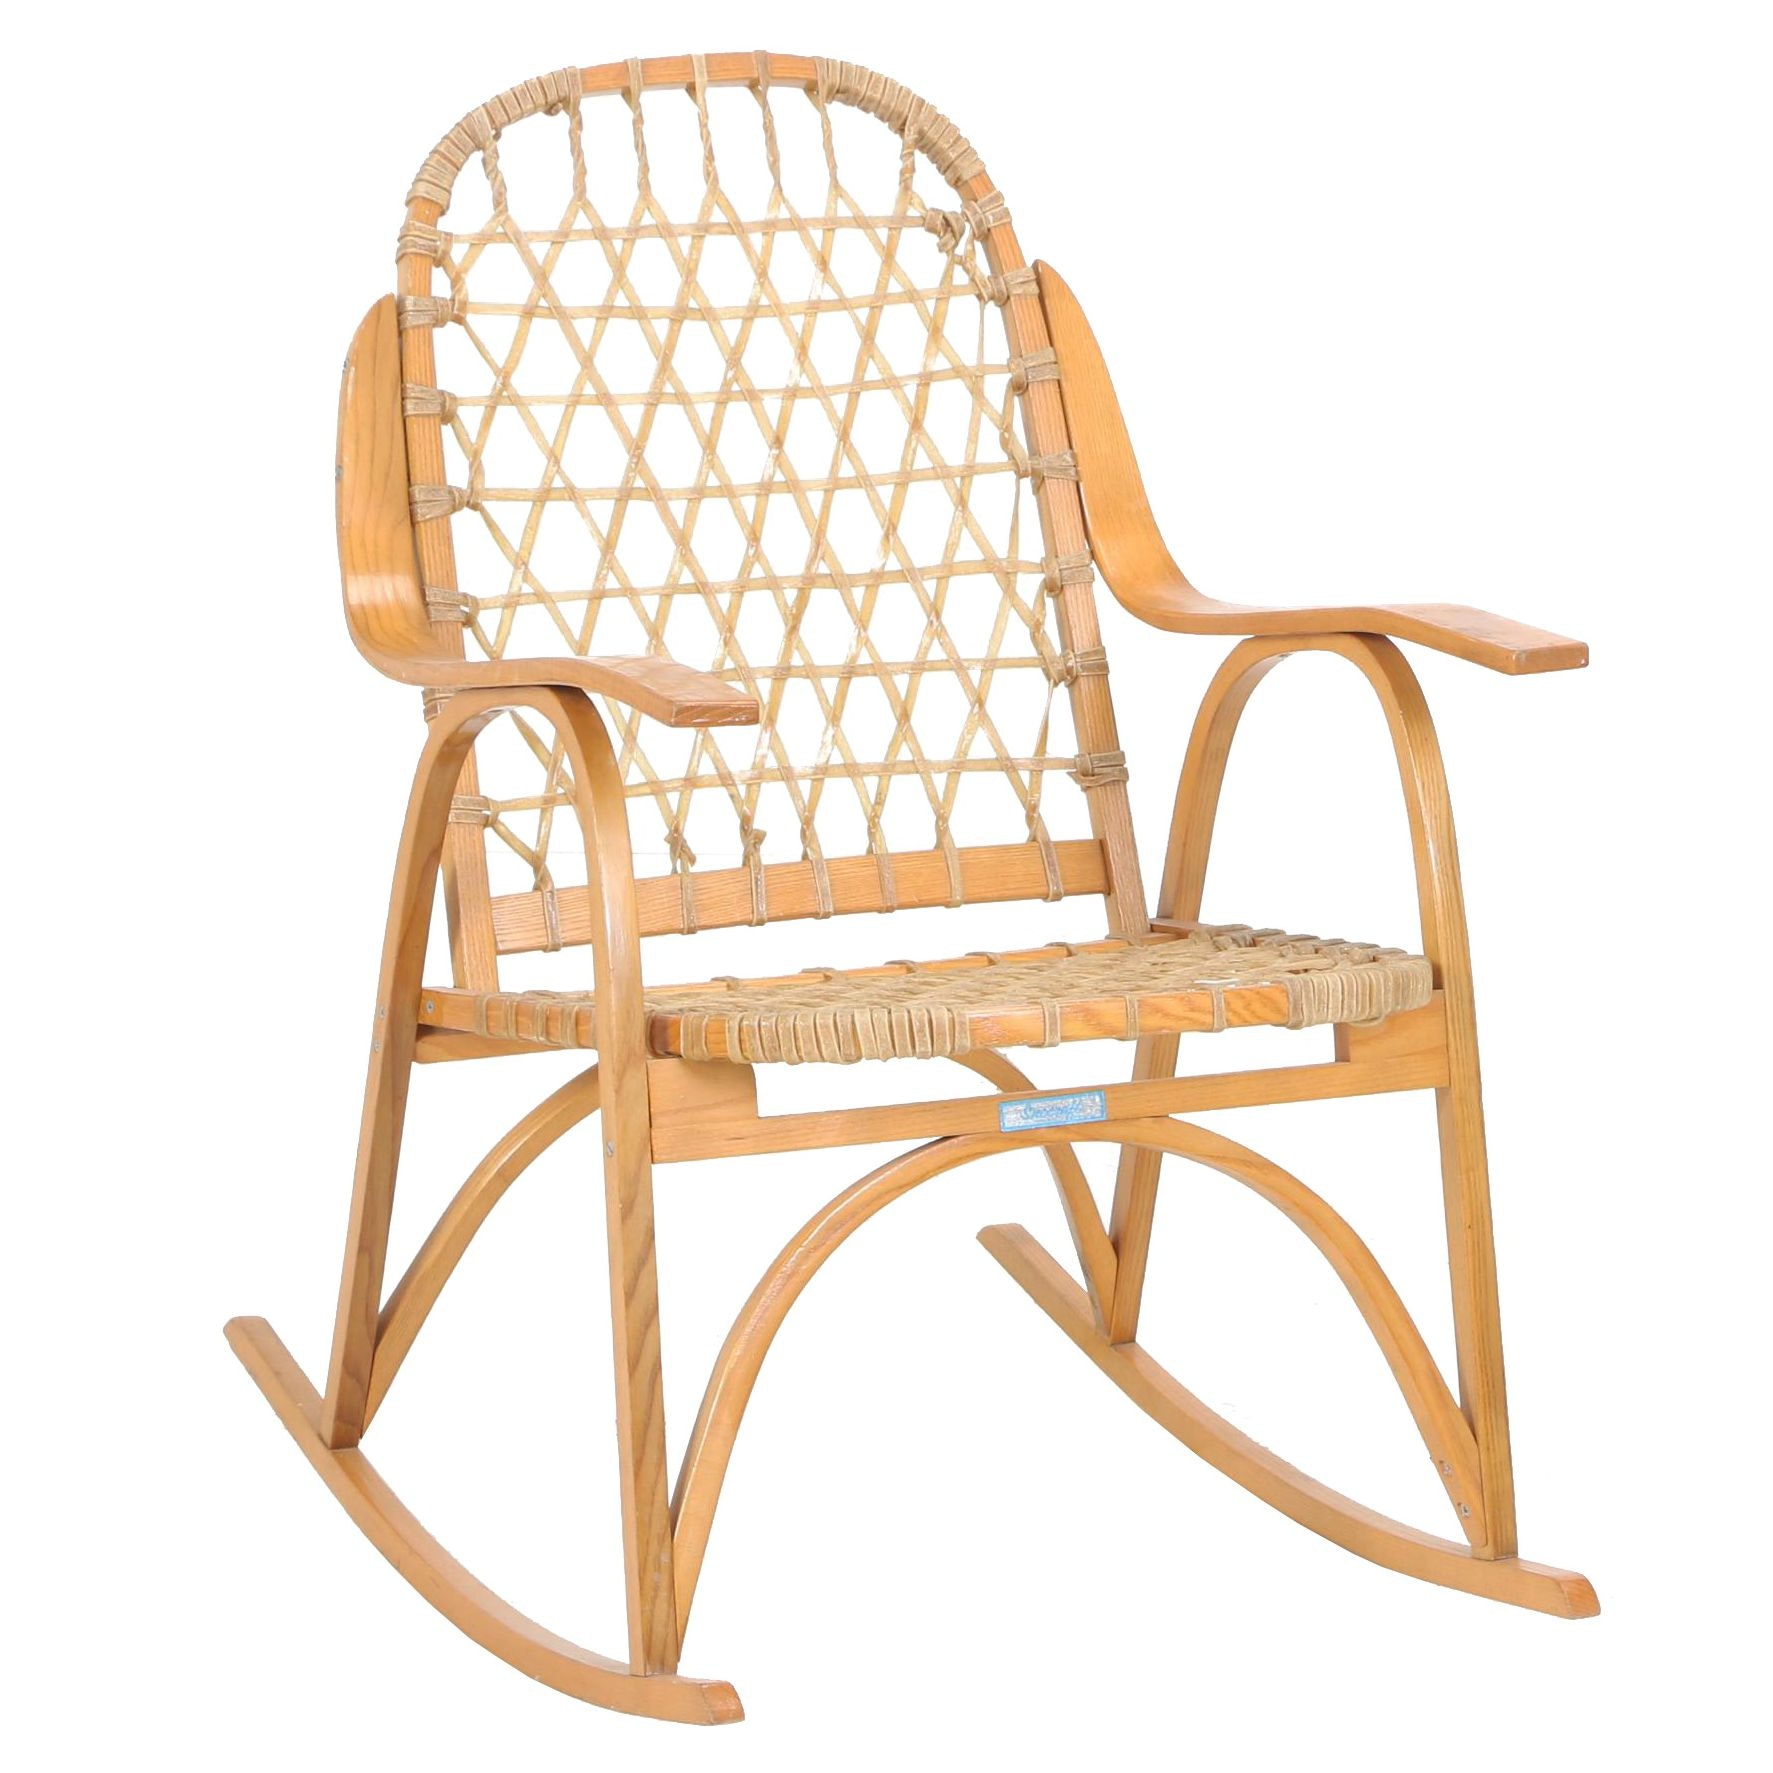 """Bent Oak and Rawhide """"Sno Shu"""" Rocking Chair by Snocraft of Maine, Circa 1970"""